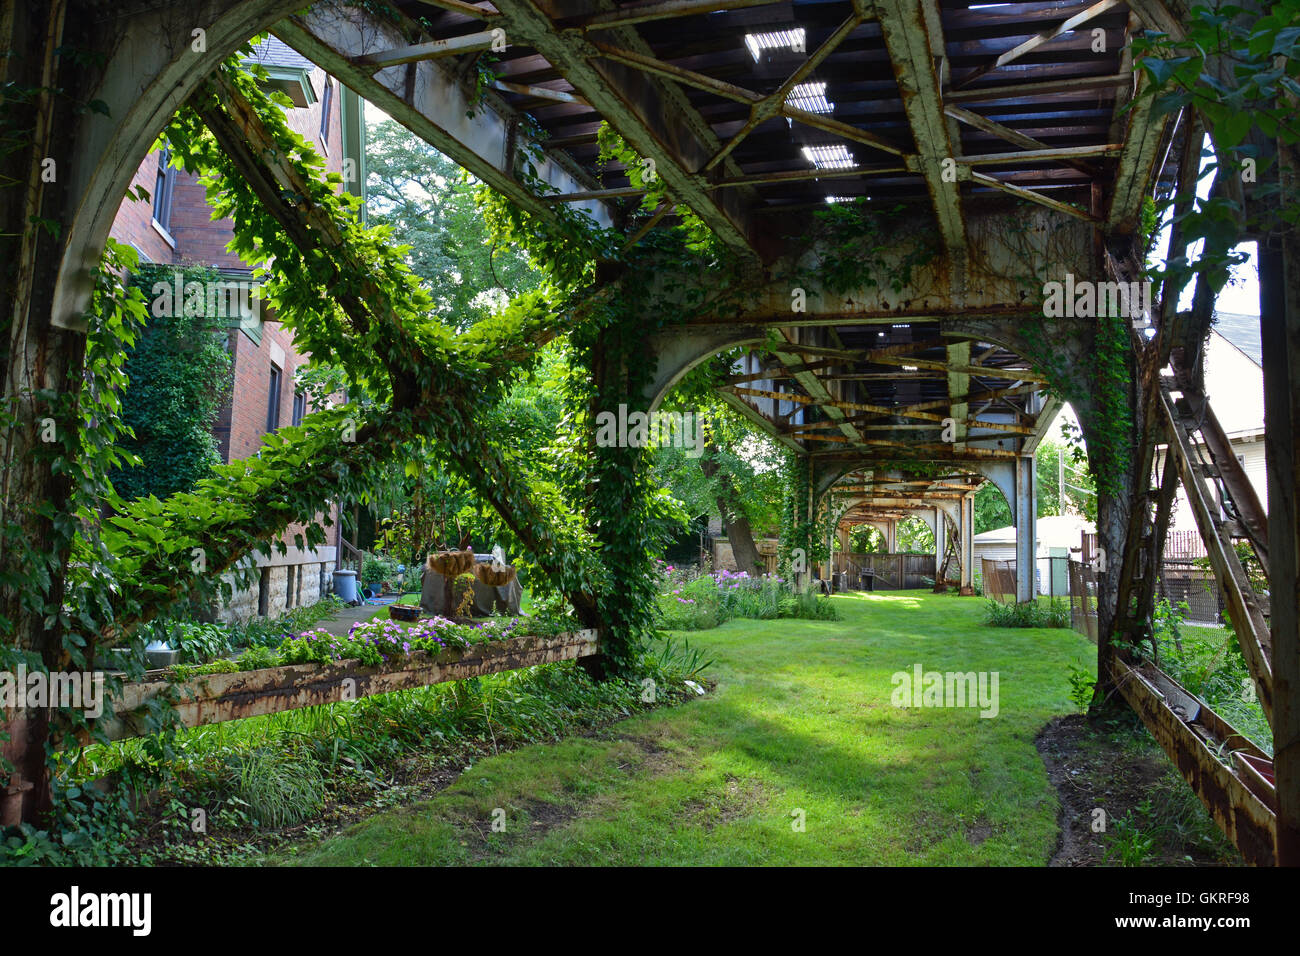 The Brown Line Elevated CTA Train Tracks Passing Through Urban Gardens In  The Residential Neighborhood Of Ravenswood In Chicago.